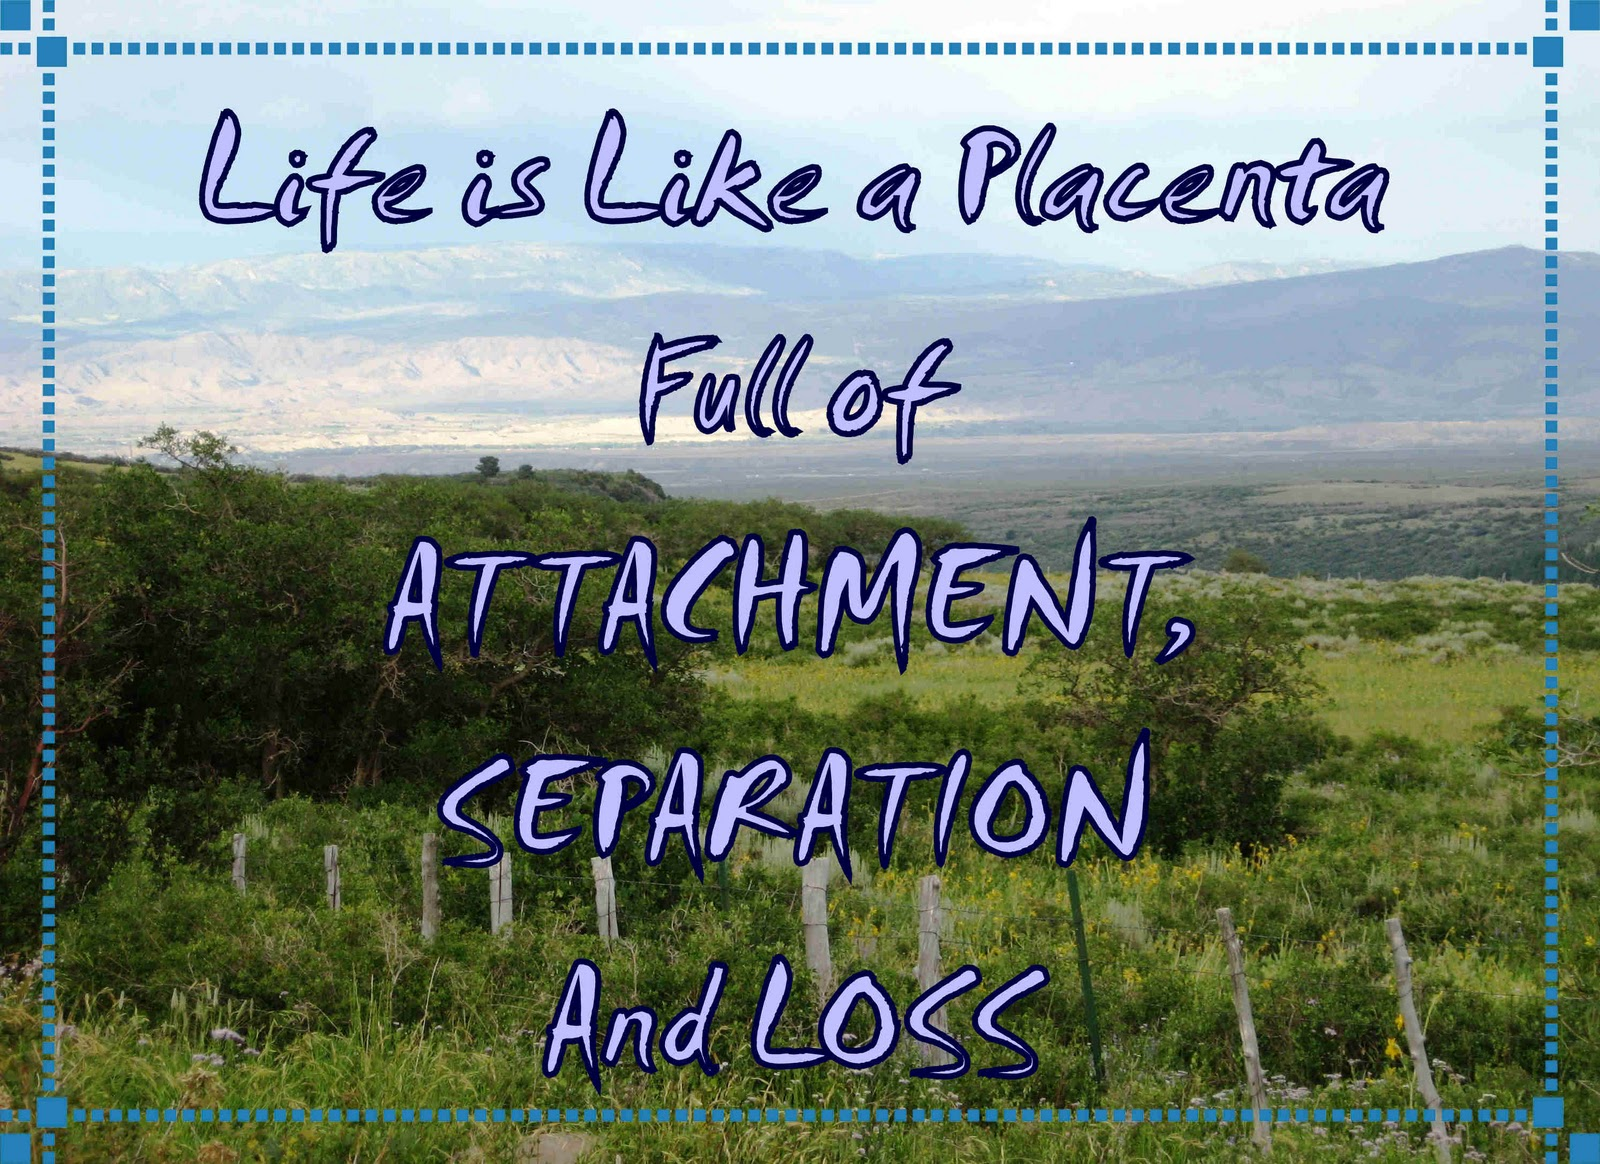 Life is like a placenta quote